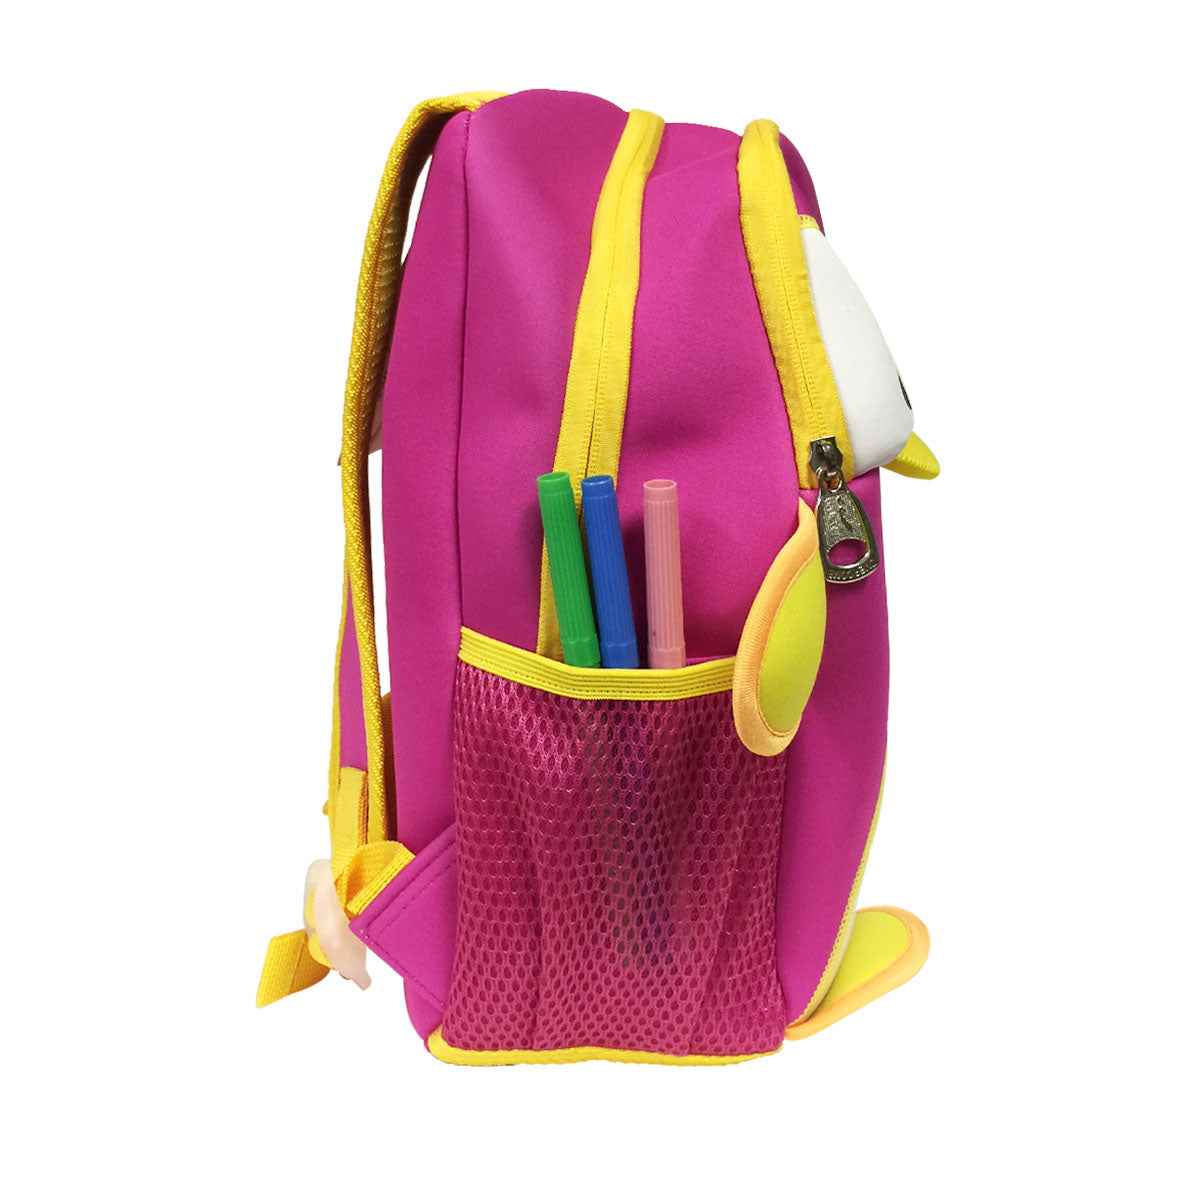 Wrapables Neoprene Fun Pals Backpack for Toddlers